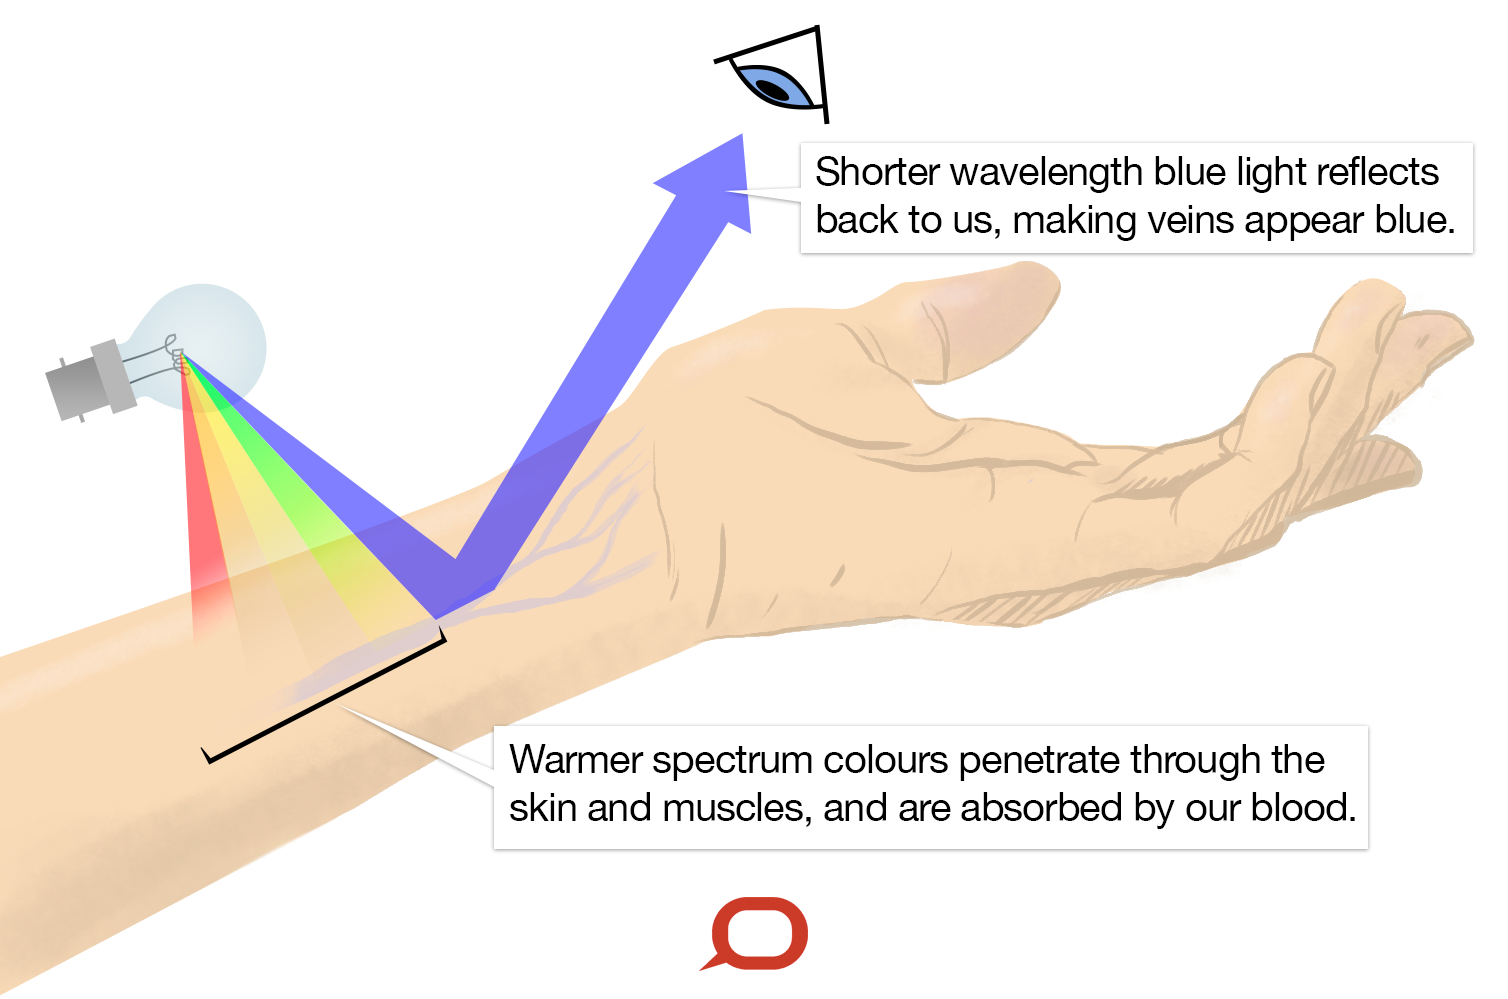 why veins appear blue